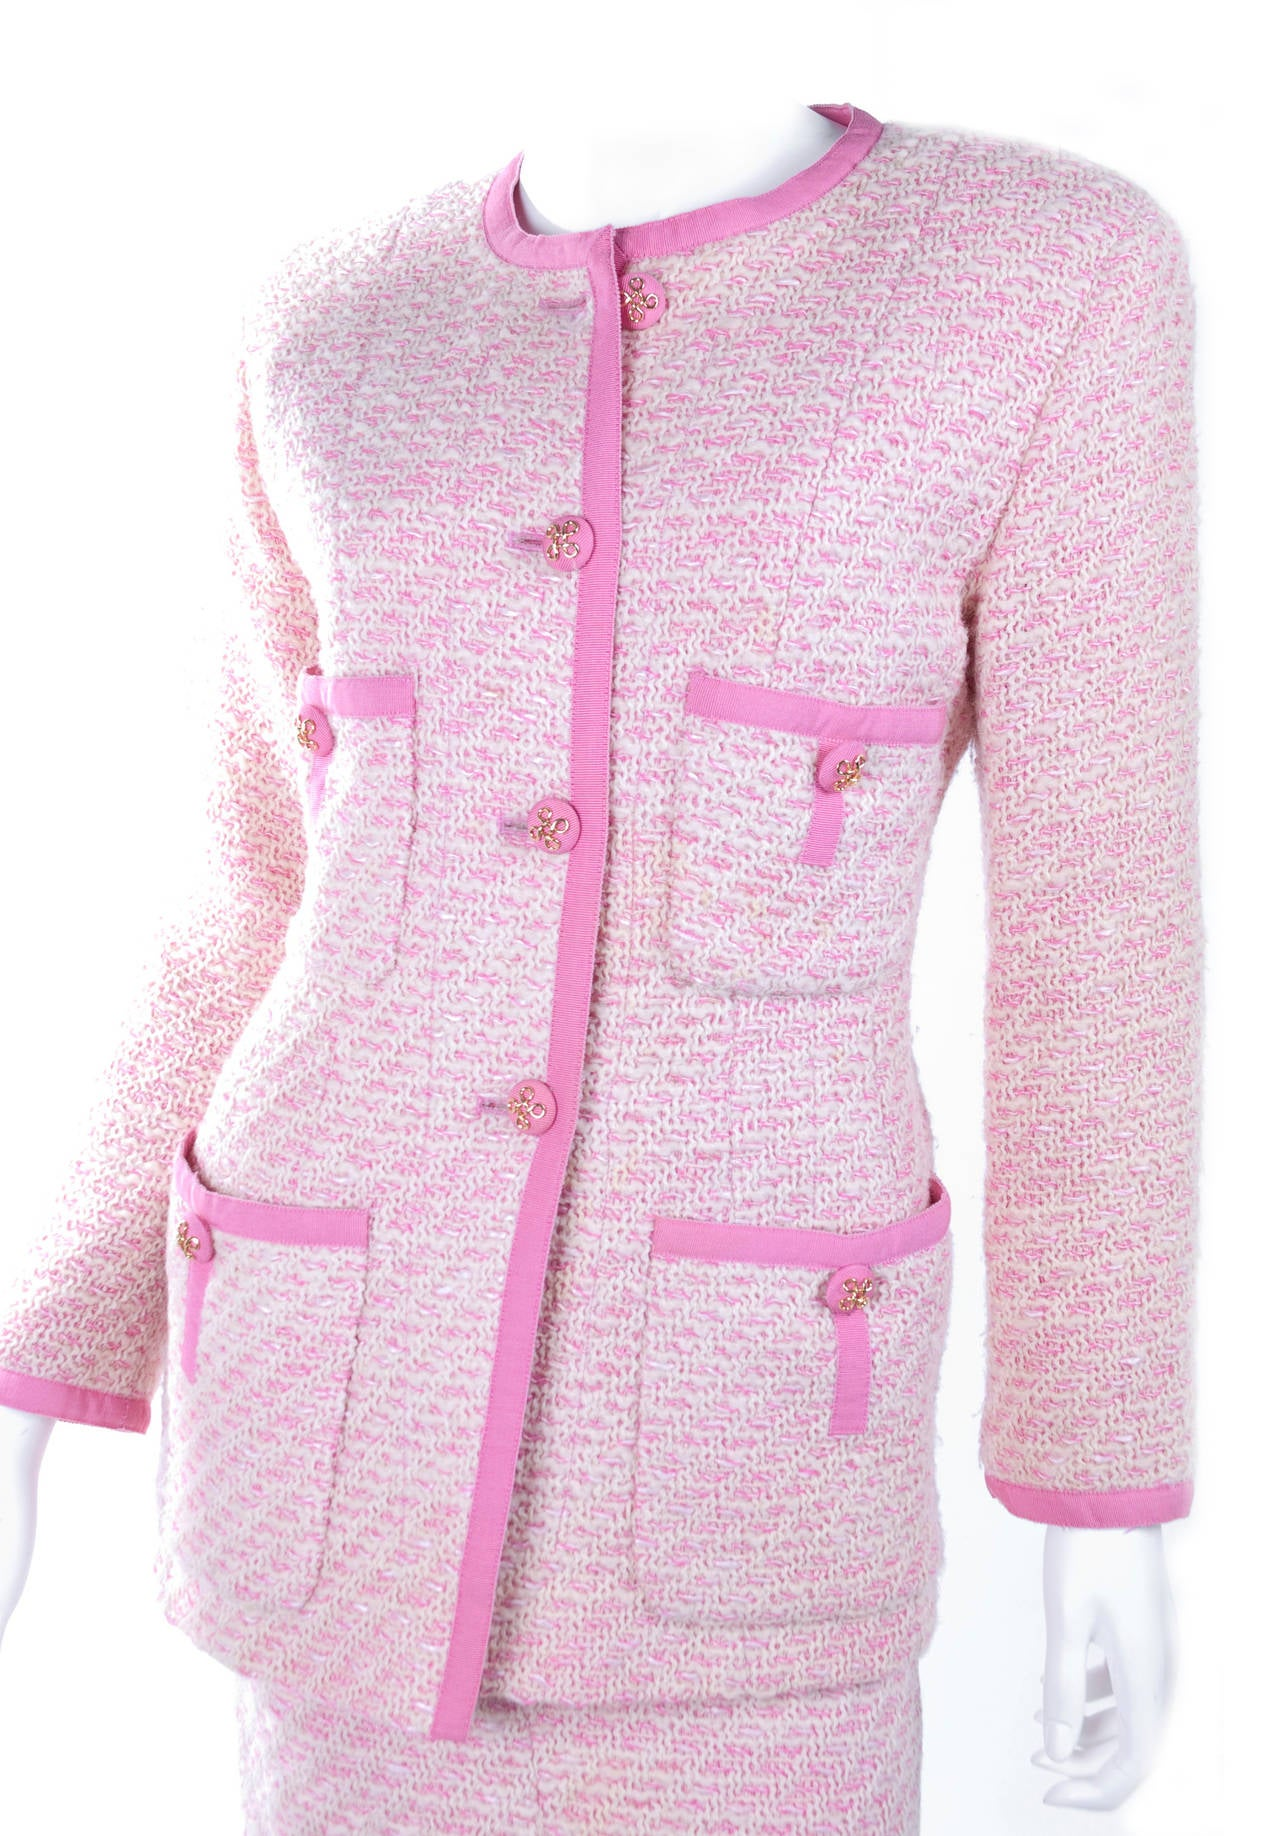 Women's Chanel Suit in Pink and Creme Documented